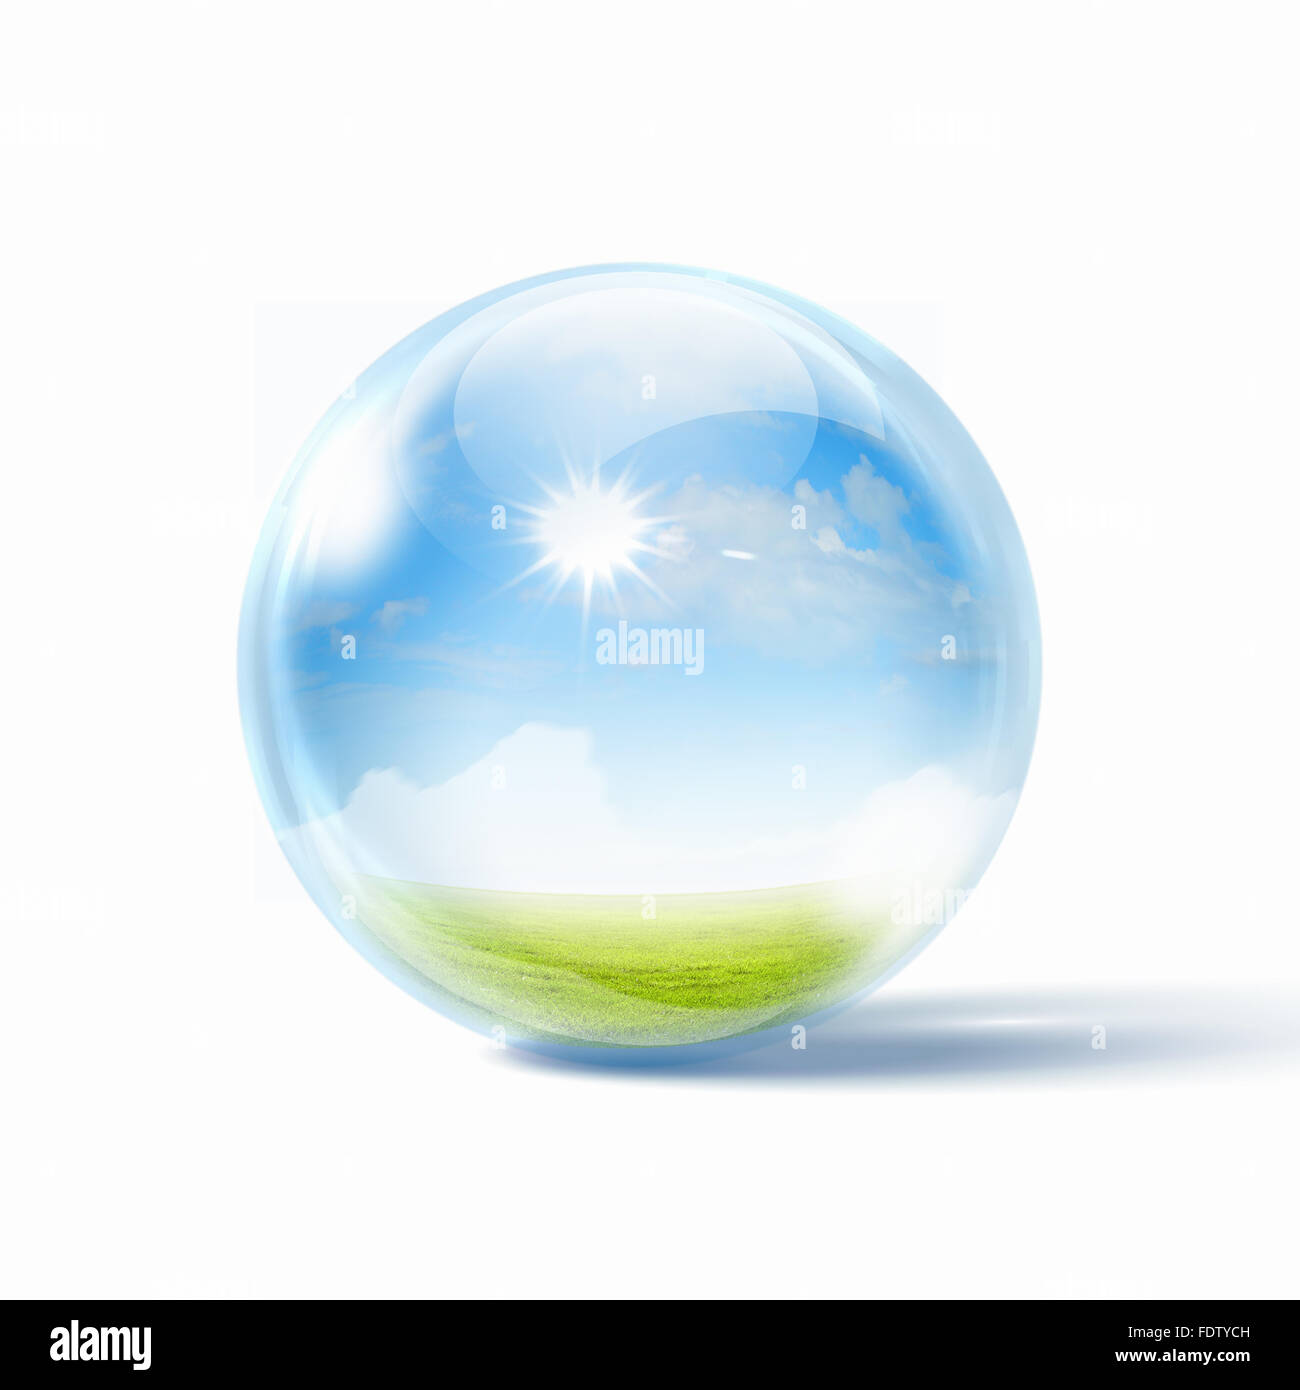 White cloud in the blue sky inside a glass sphere - Stock Image